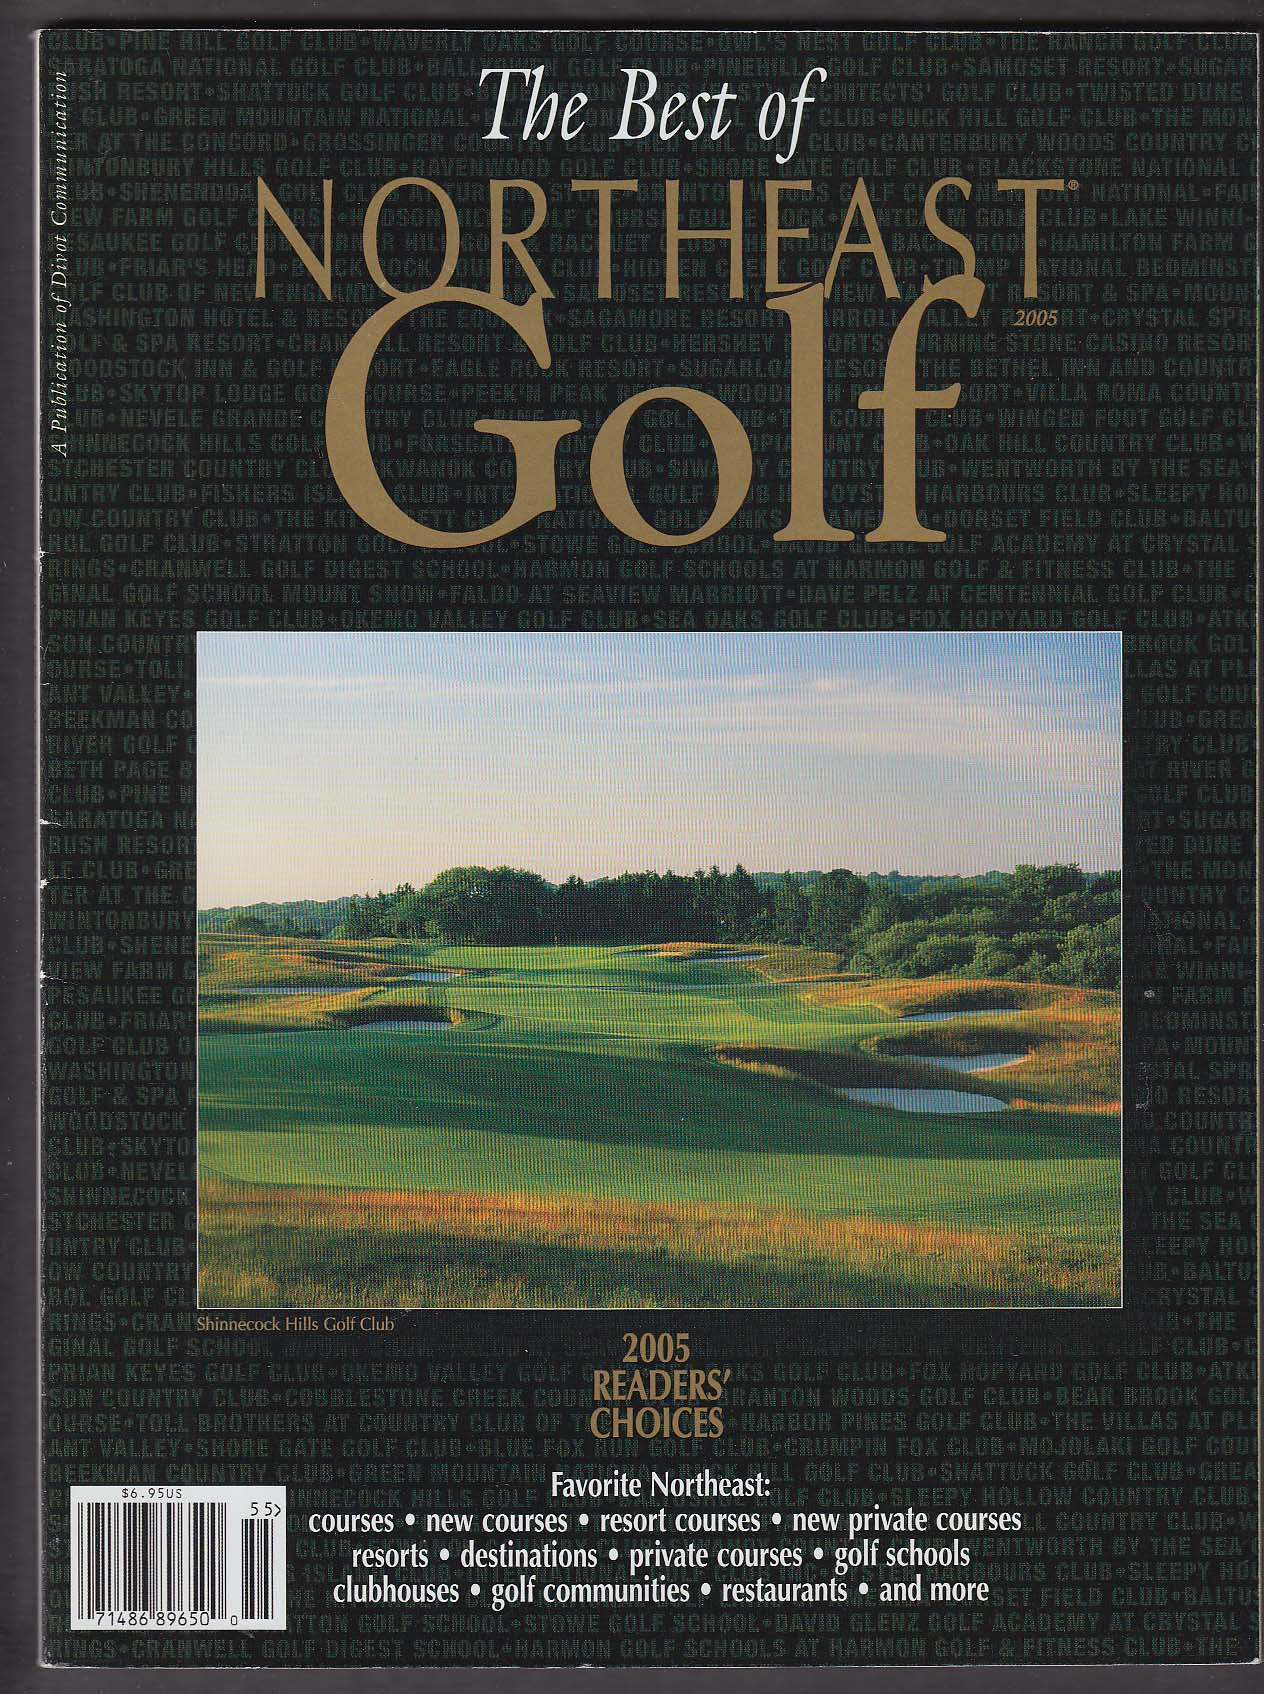 Image for Best of NORTHEAST GOLF 2005 Shinnecock Hills Crystal Springs Vermont ++